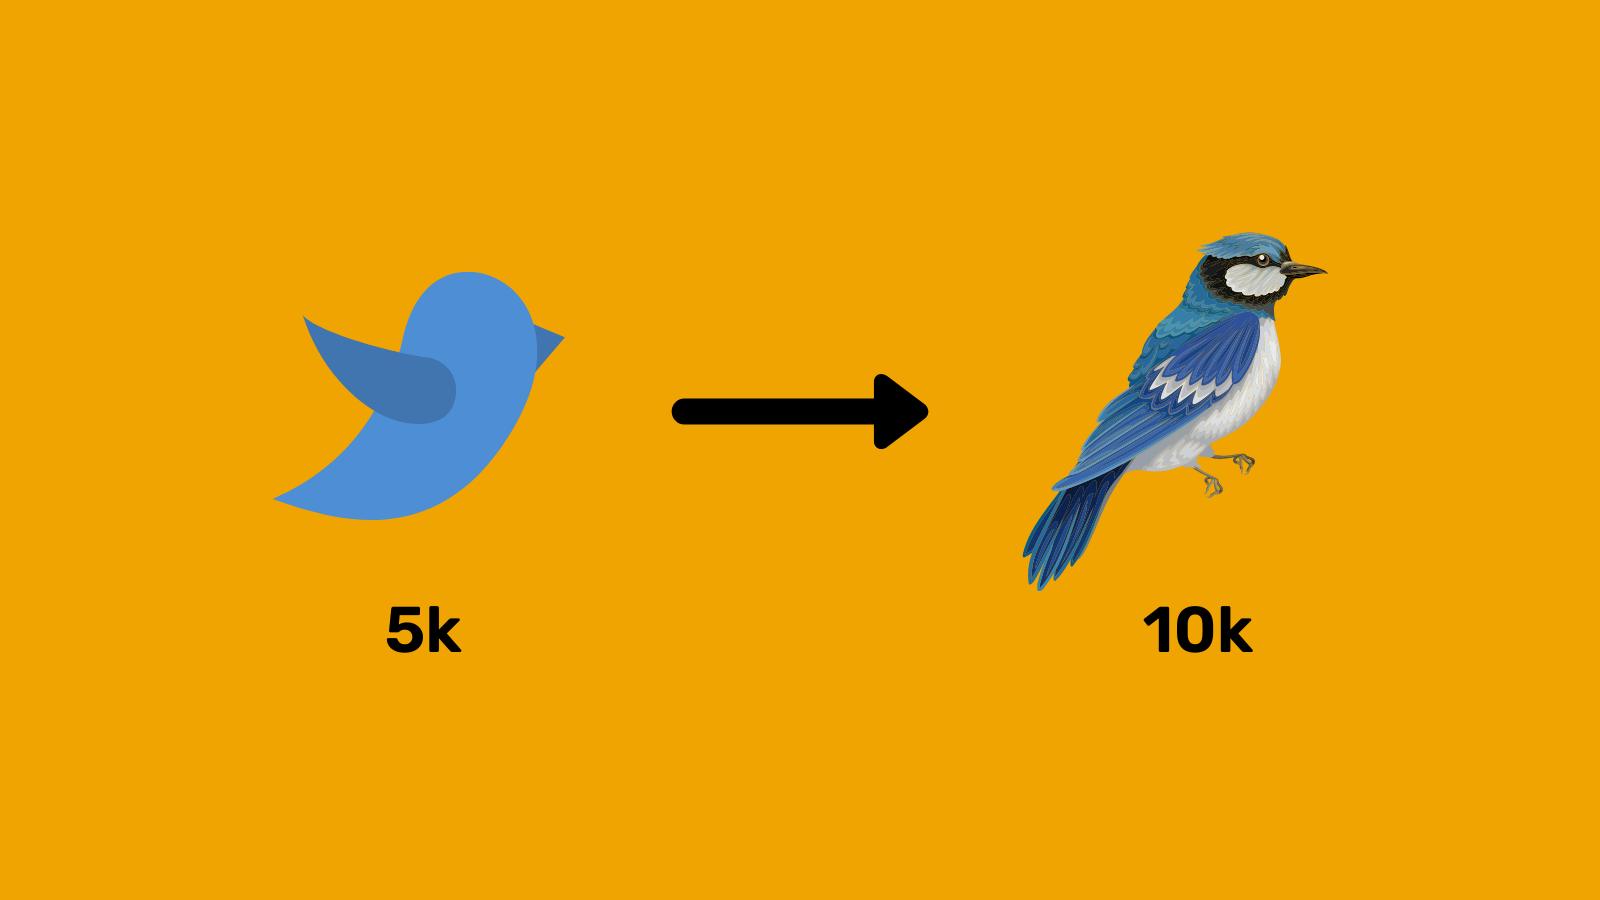 From 5k to 10k followers on Twitter - The Journey